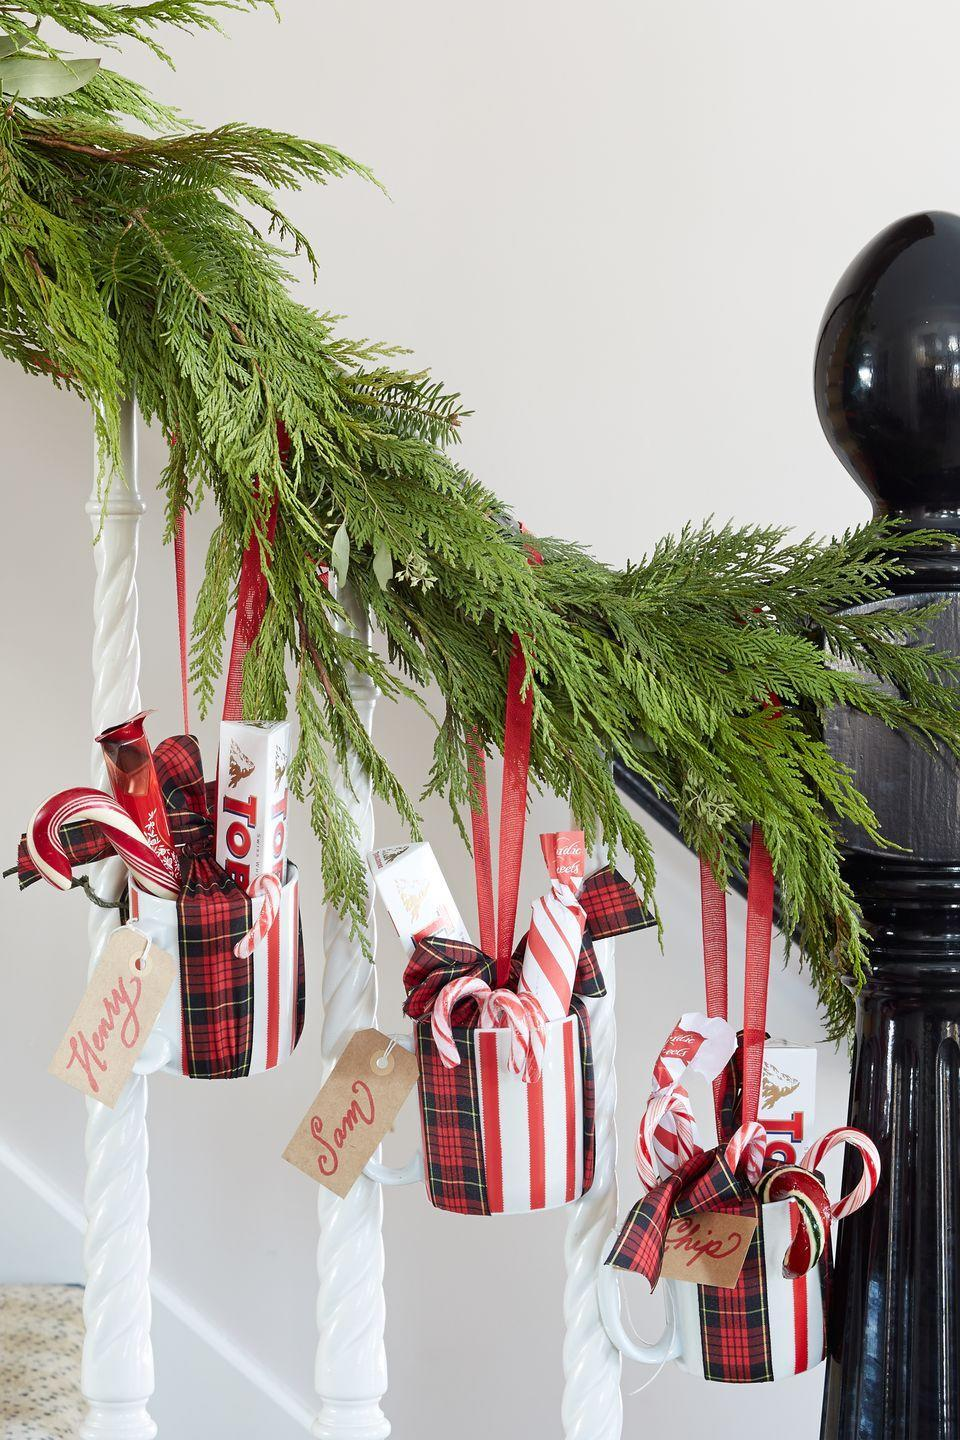 """<p>Sweeten a garland with welcome gifts. Offer treats to overnight guests as they head up to their temporary digs by hanging coffee mugs filled with candy and hot cocoa mix on the banister garland.</p><p><a class=""""link rapid-noclick-resp"""" href=""""https://www.amazon.com/s/ref=nb_sb_noss_2?url=search-alias%3Daps&field-keywords=plaid+coffee+mug&rh=i%3Aaps%2Ck%3Aplaid+coffee+mug&tag=syn-yahoo-20&ascsubtag=%5Bartid%7C10050.g.1247%5Bsrc%7Cyahoo-us"""" rel=""""nofollow noopener"""" target=""""_blank"""" data-ylk=""""slk:SHOP COFFEE MUGS"""">SHOP COFFEE MUGS</a></p>"""